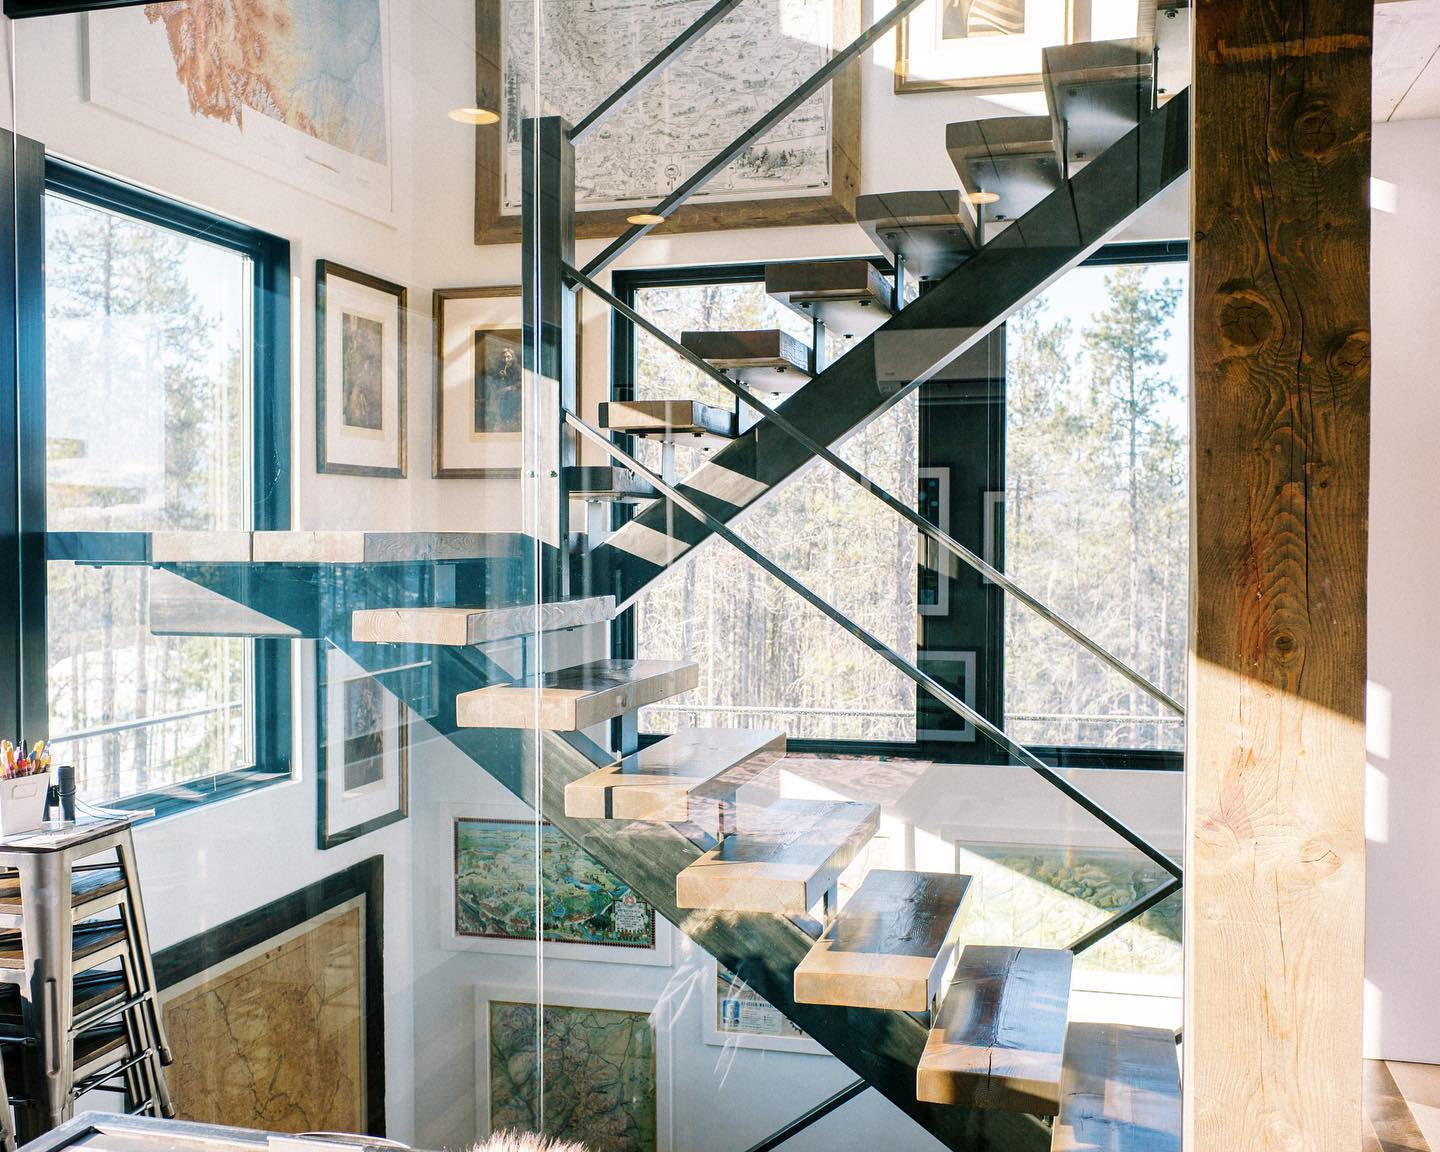 Suns out! Love these floating stairs...and the art is pretty good too!!  photo credit @jeremiahandrachel @frameref_whitefish whitefish custom home builder